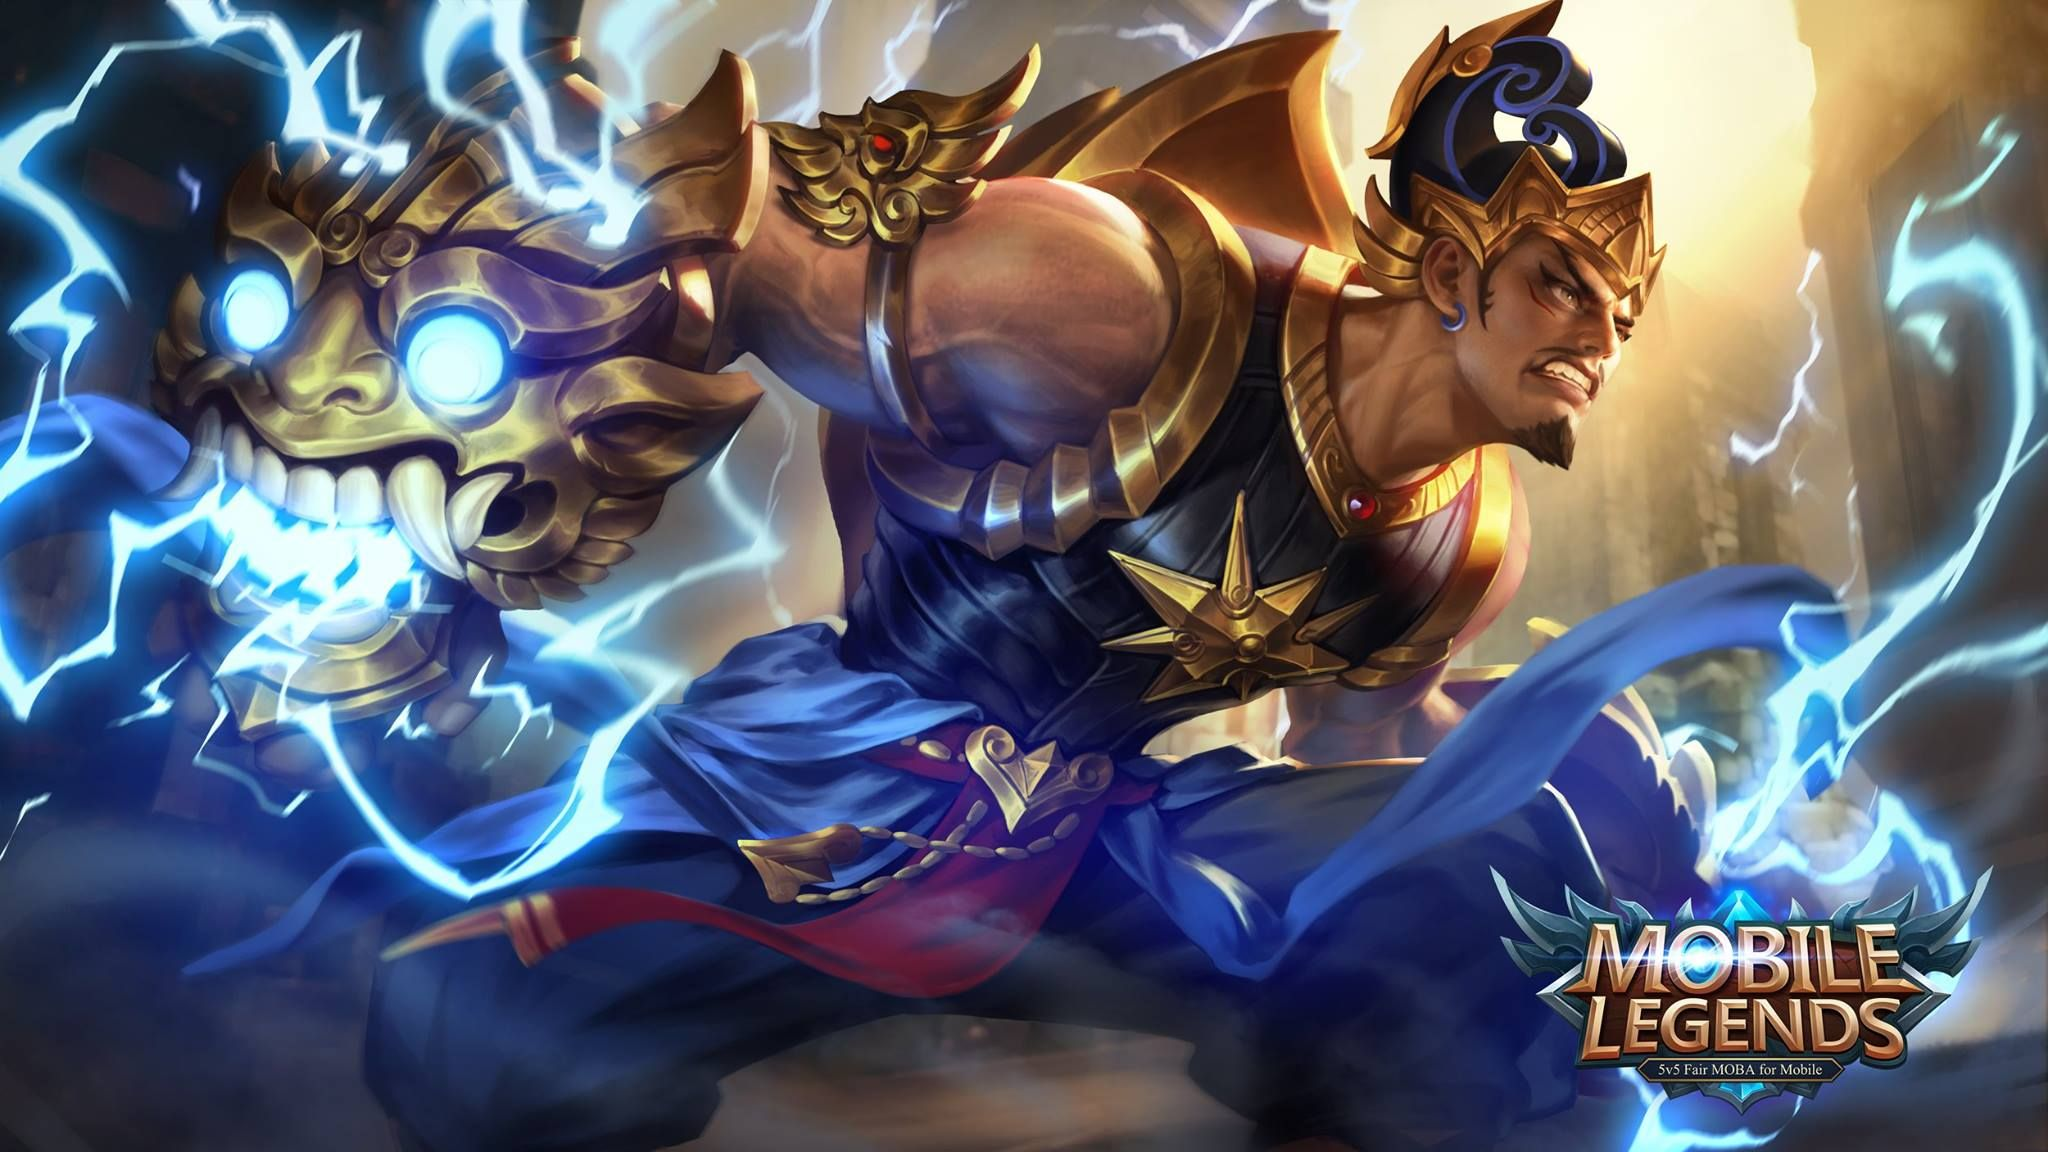 Image for Awesome Wallpaper HD Mobile Legends Ws018ml damn 2048x1152